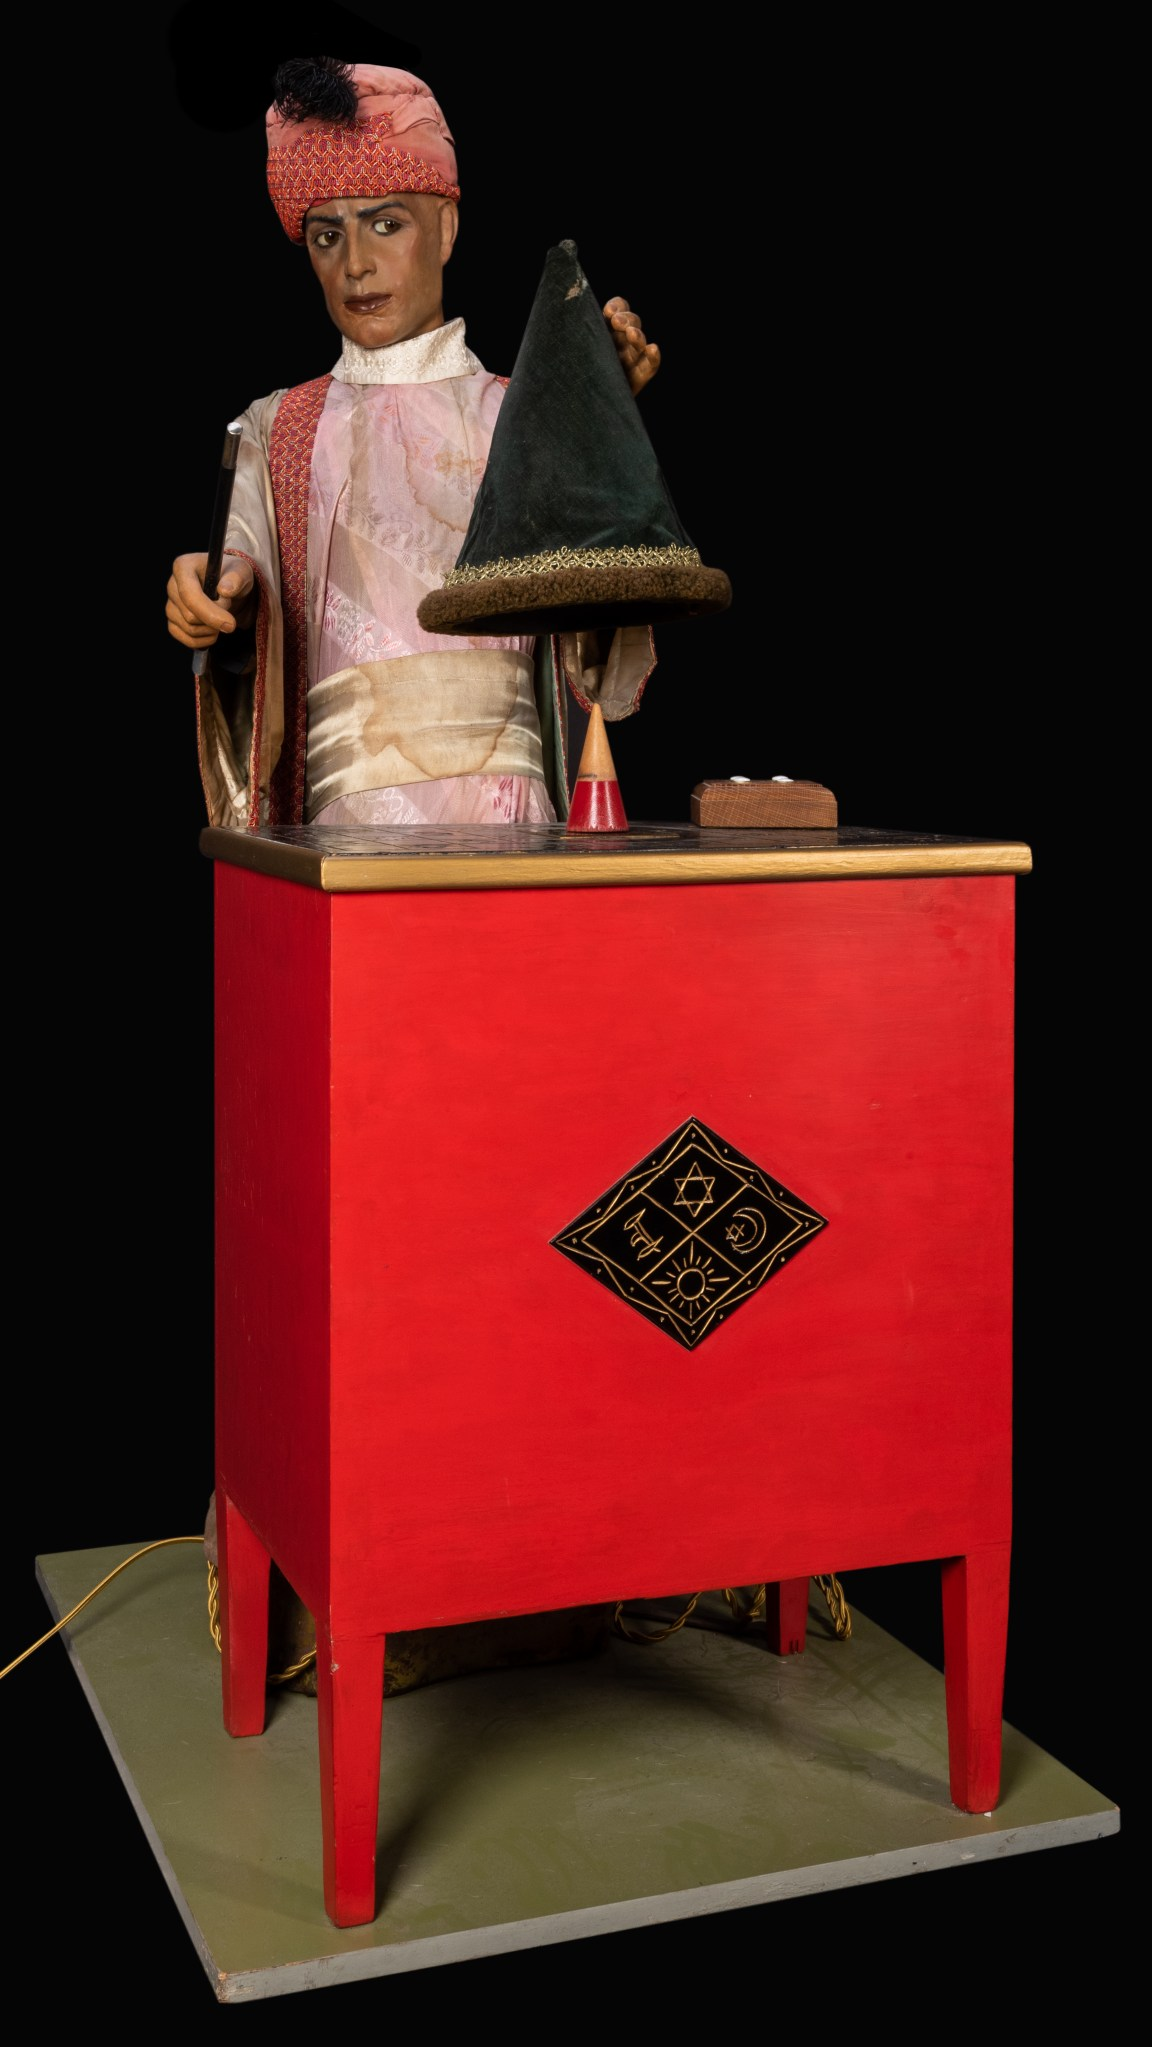 A circa 1925-1930 magician automaton that appeared in the 1972 film Sleuth, which starred Laurence Olivier and Michael Caine. It stands 56 1/2 inches tall and performs eight movements.